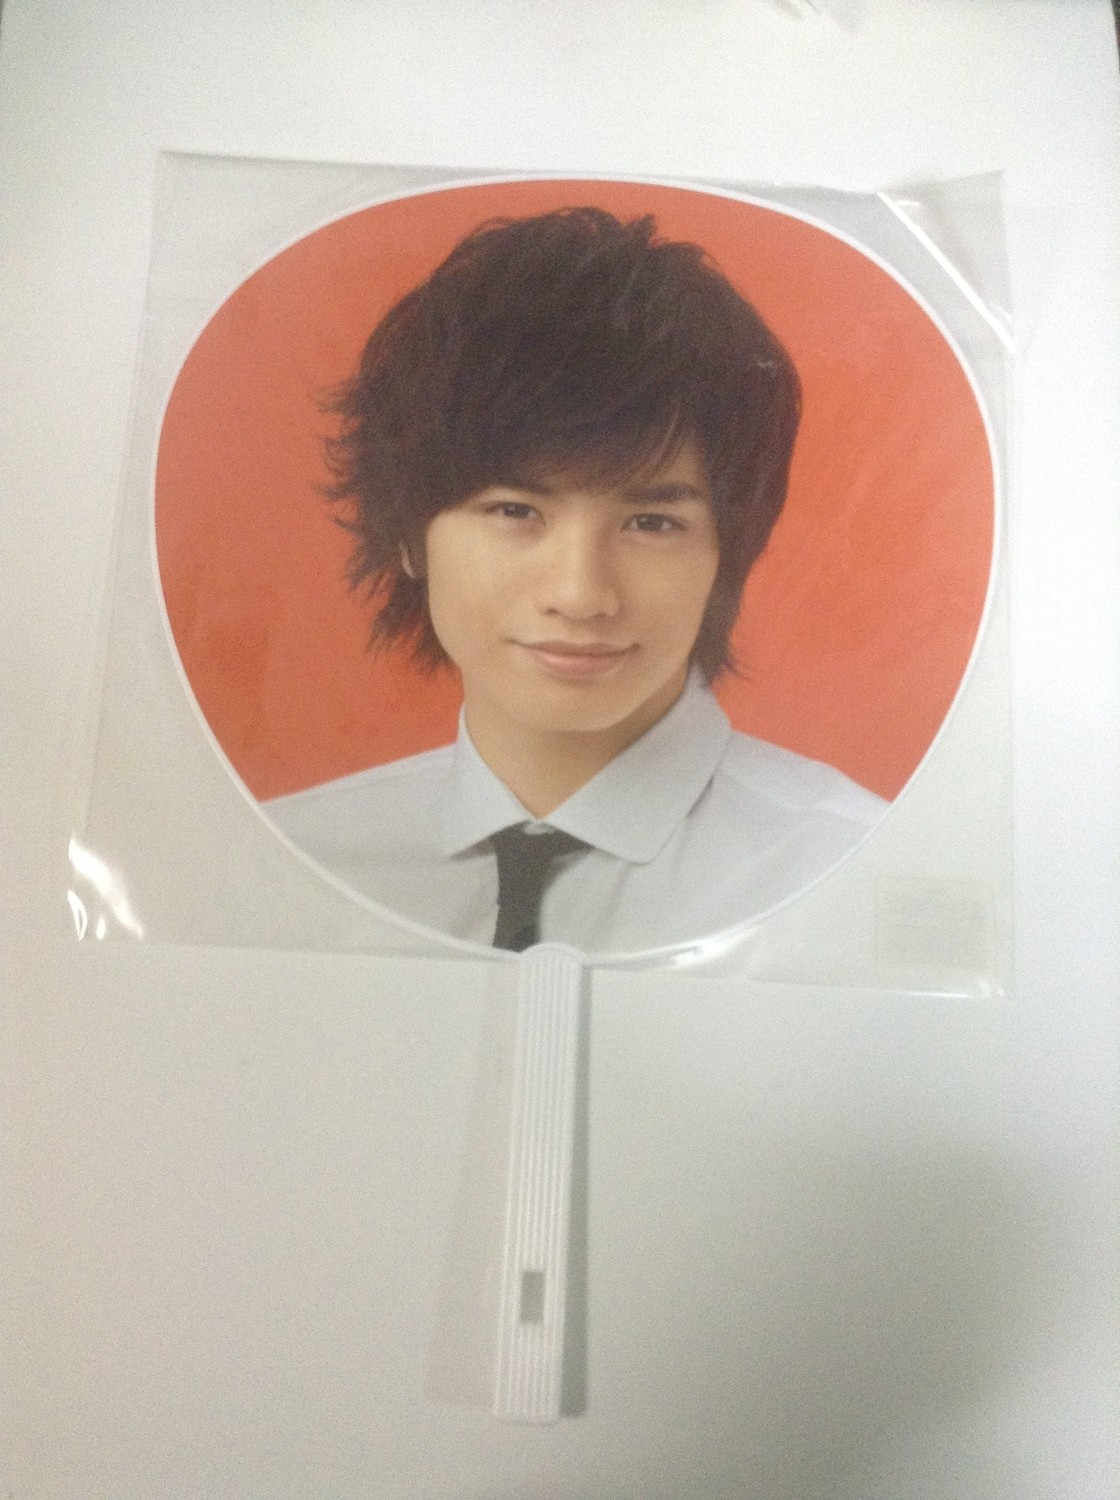 Sexy Zone Japan Tour 2013 Jumbo Uchiwa Kento